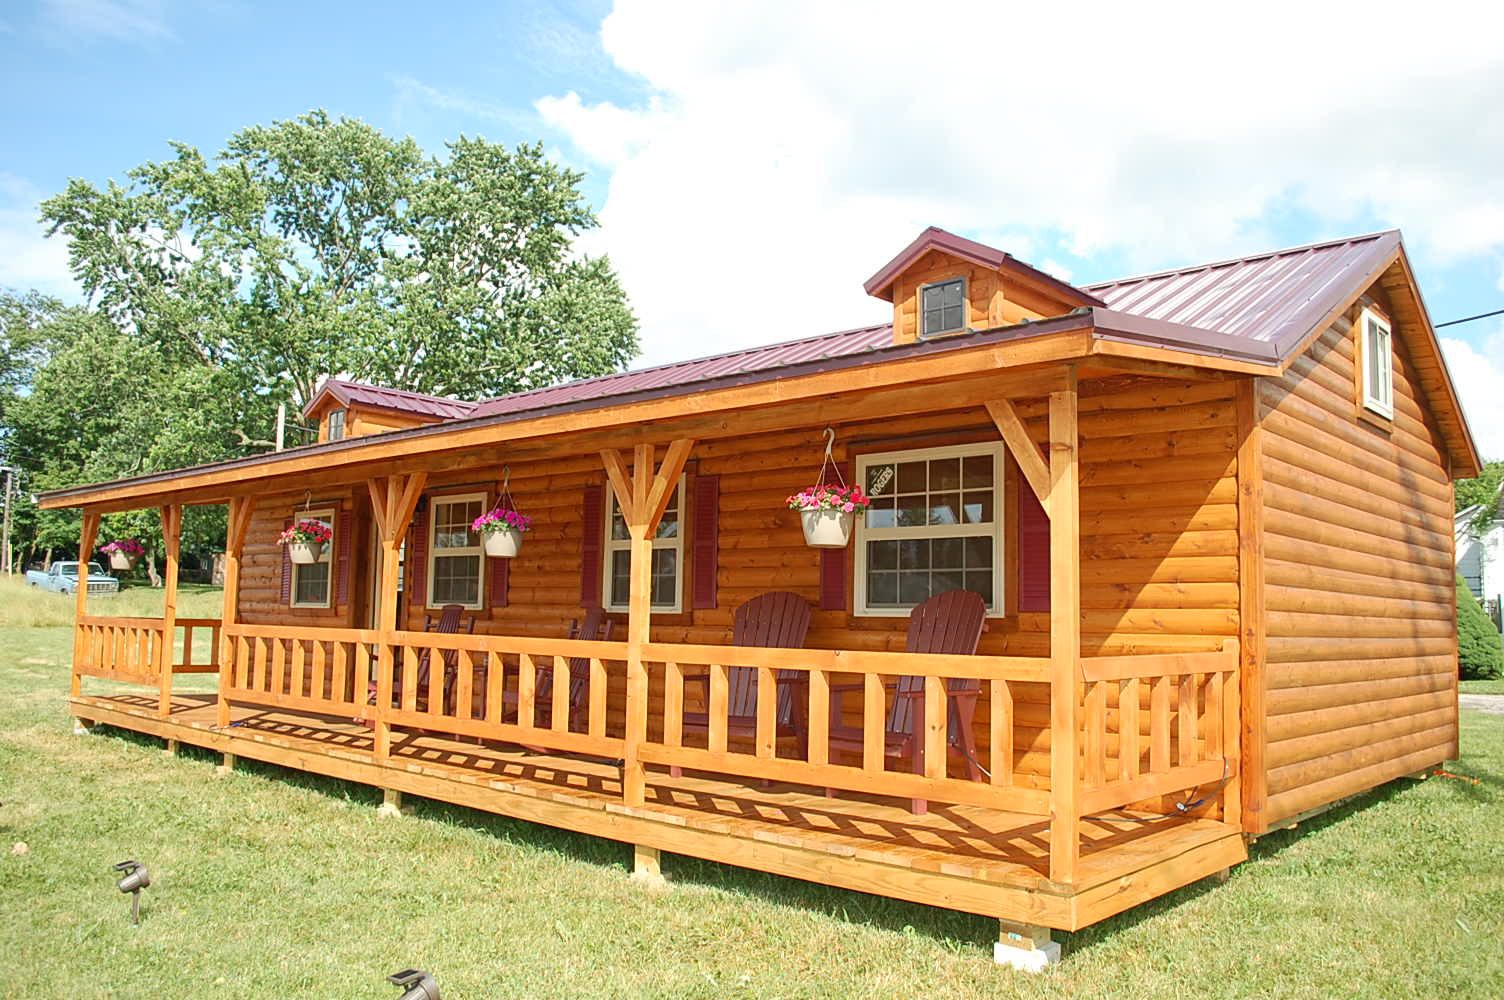 Log cabin kits 10 of the best on the market for Wood cabin homes